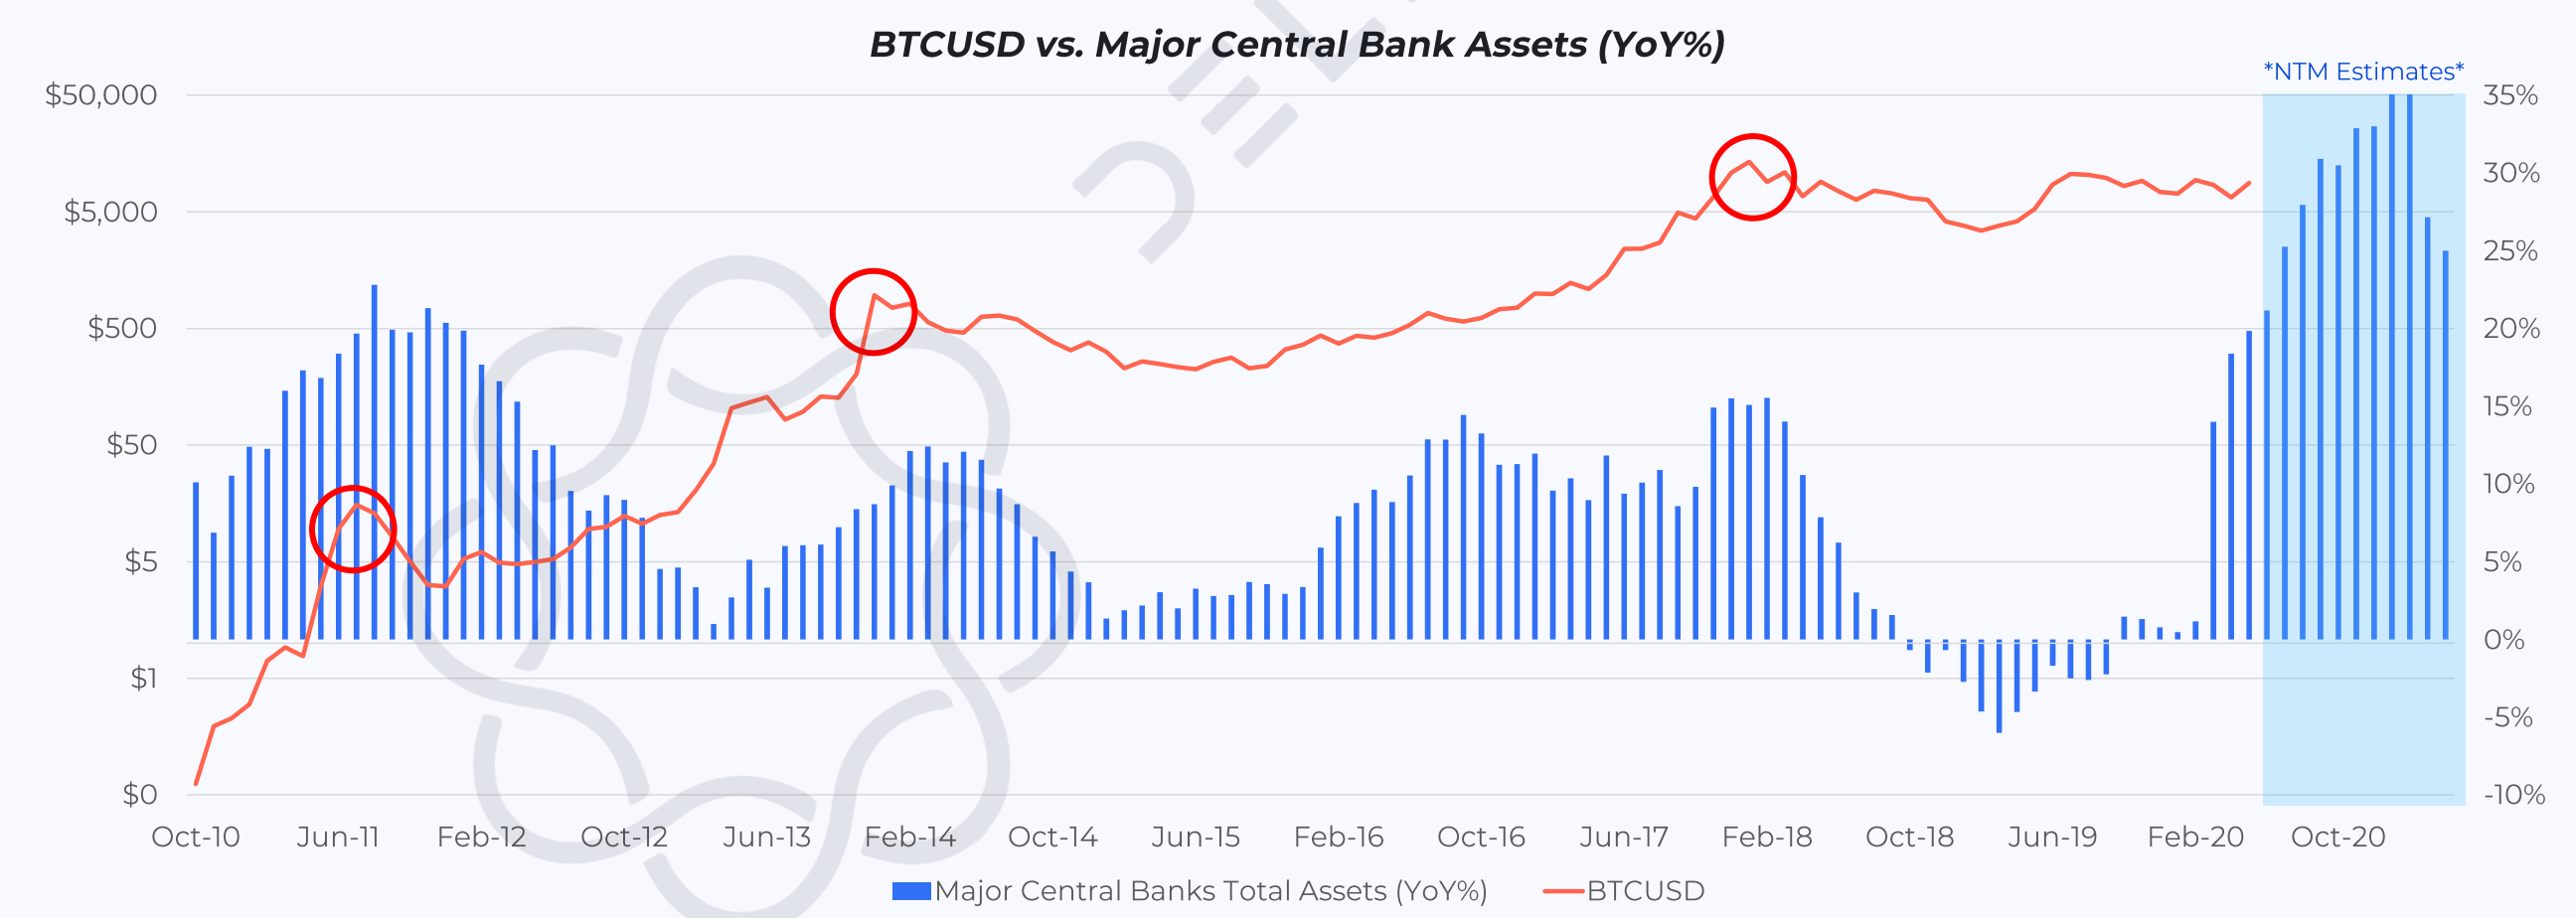 Bitcoin vs. Major Central Banks Assets. (Source: Delphi)